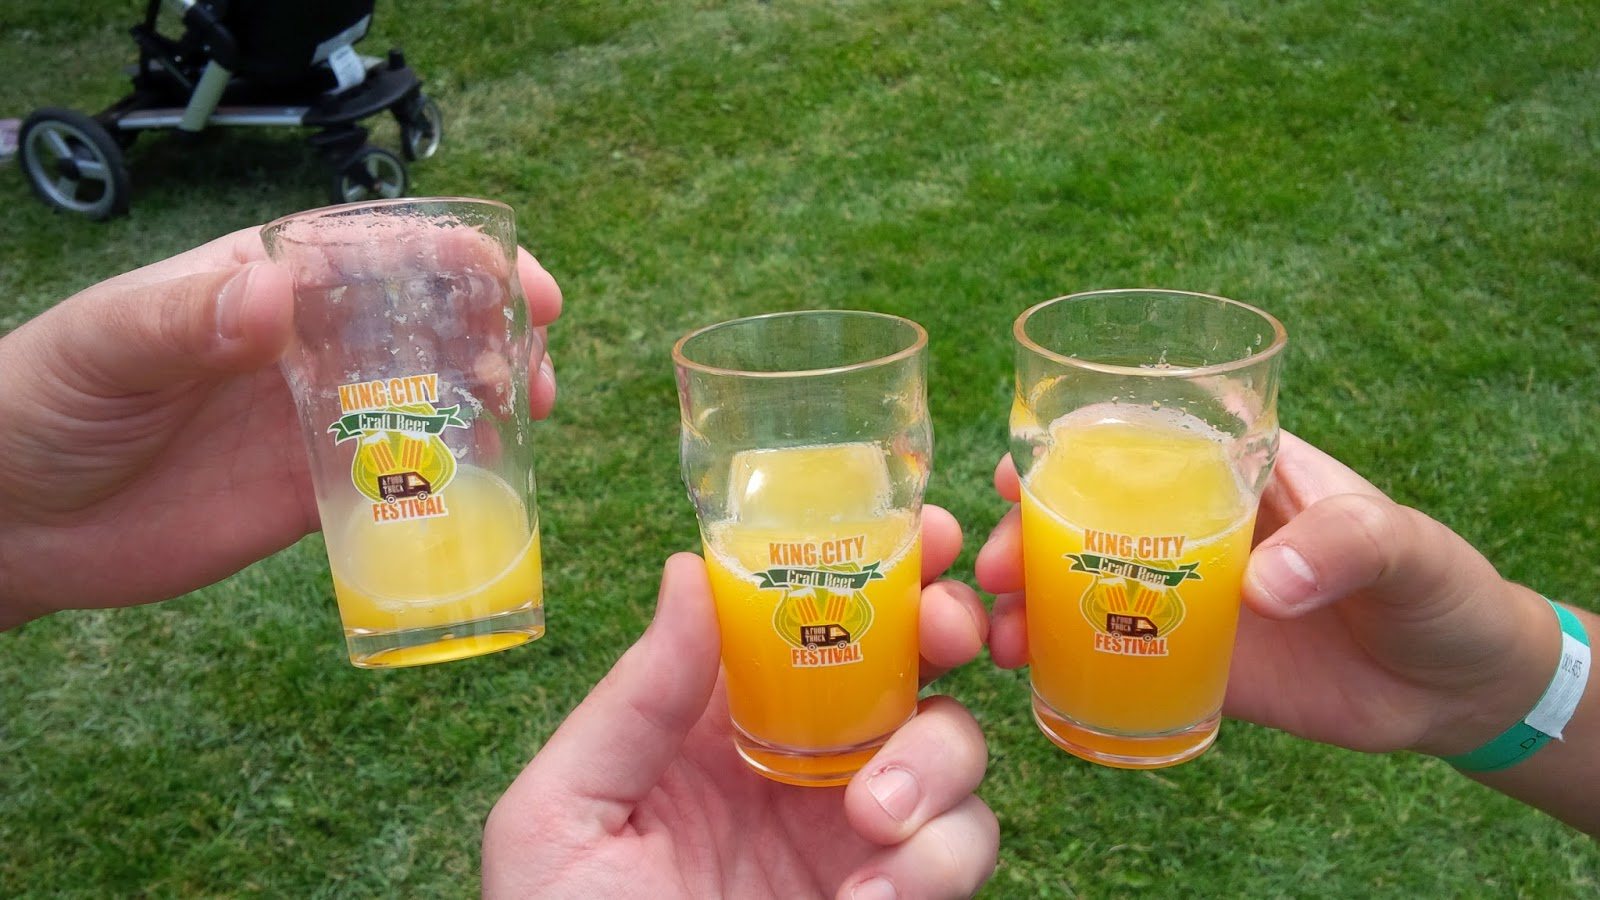 King city craft beer and food truck festival recap real for Craft beer and food